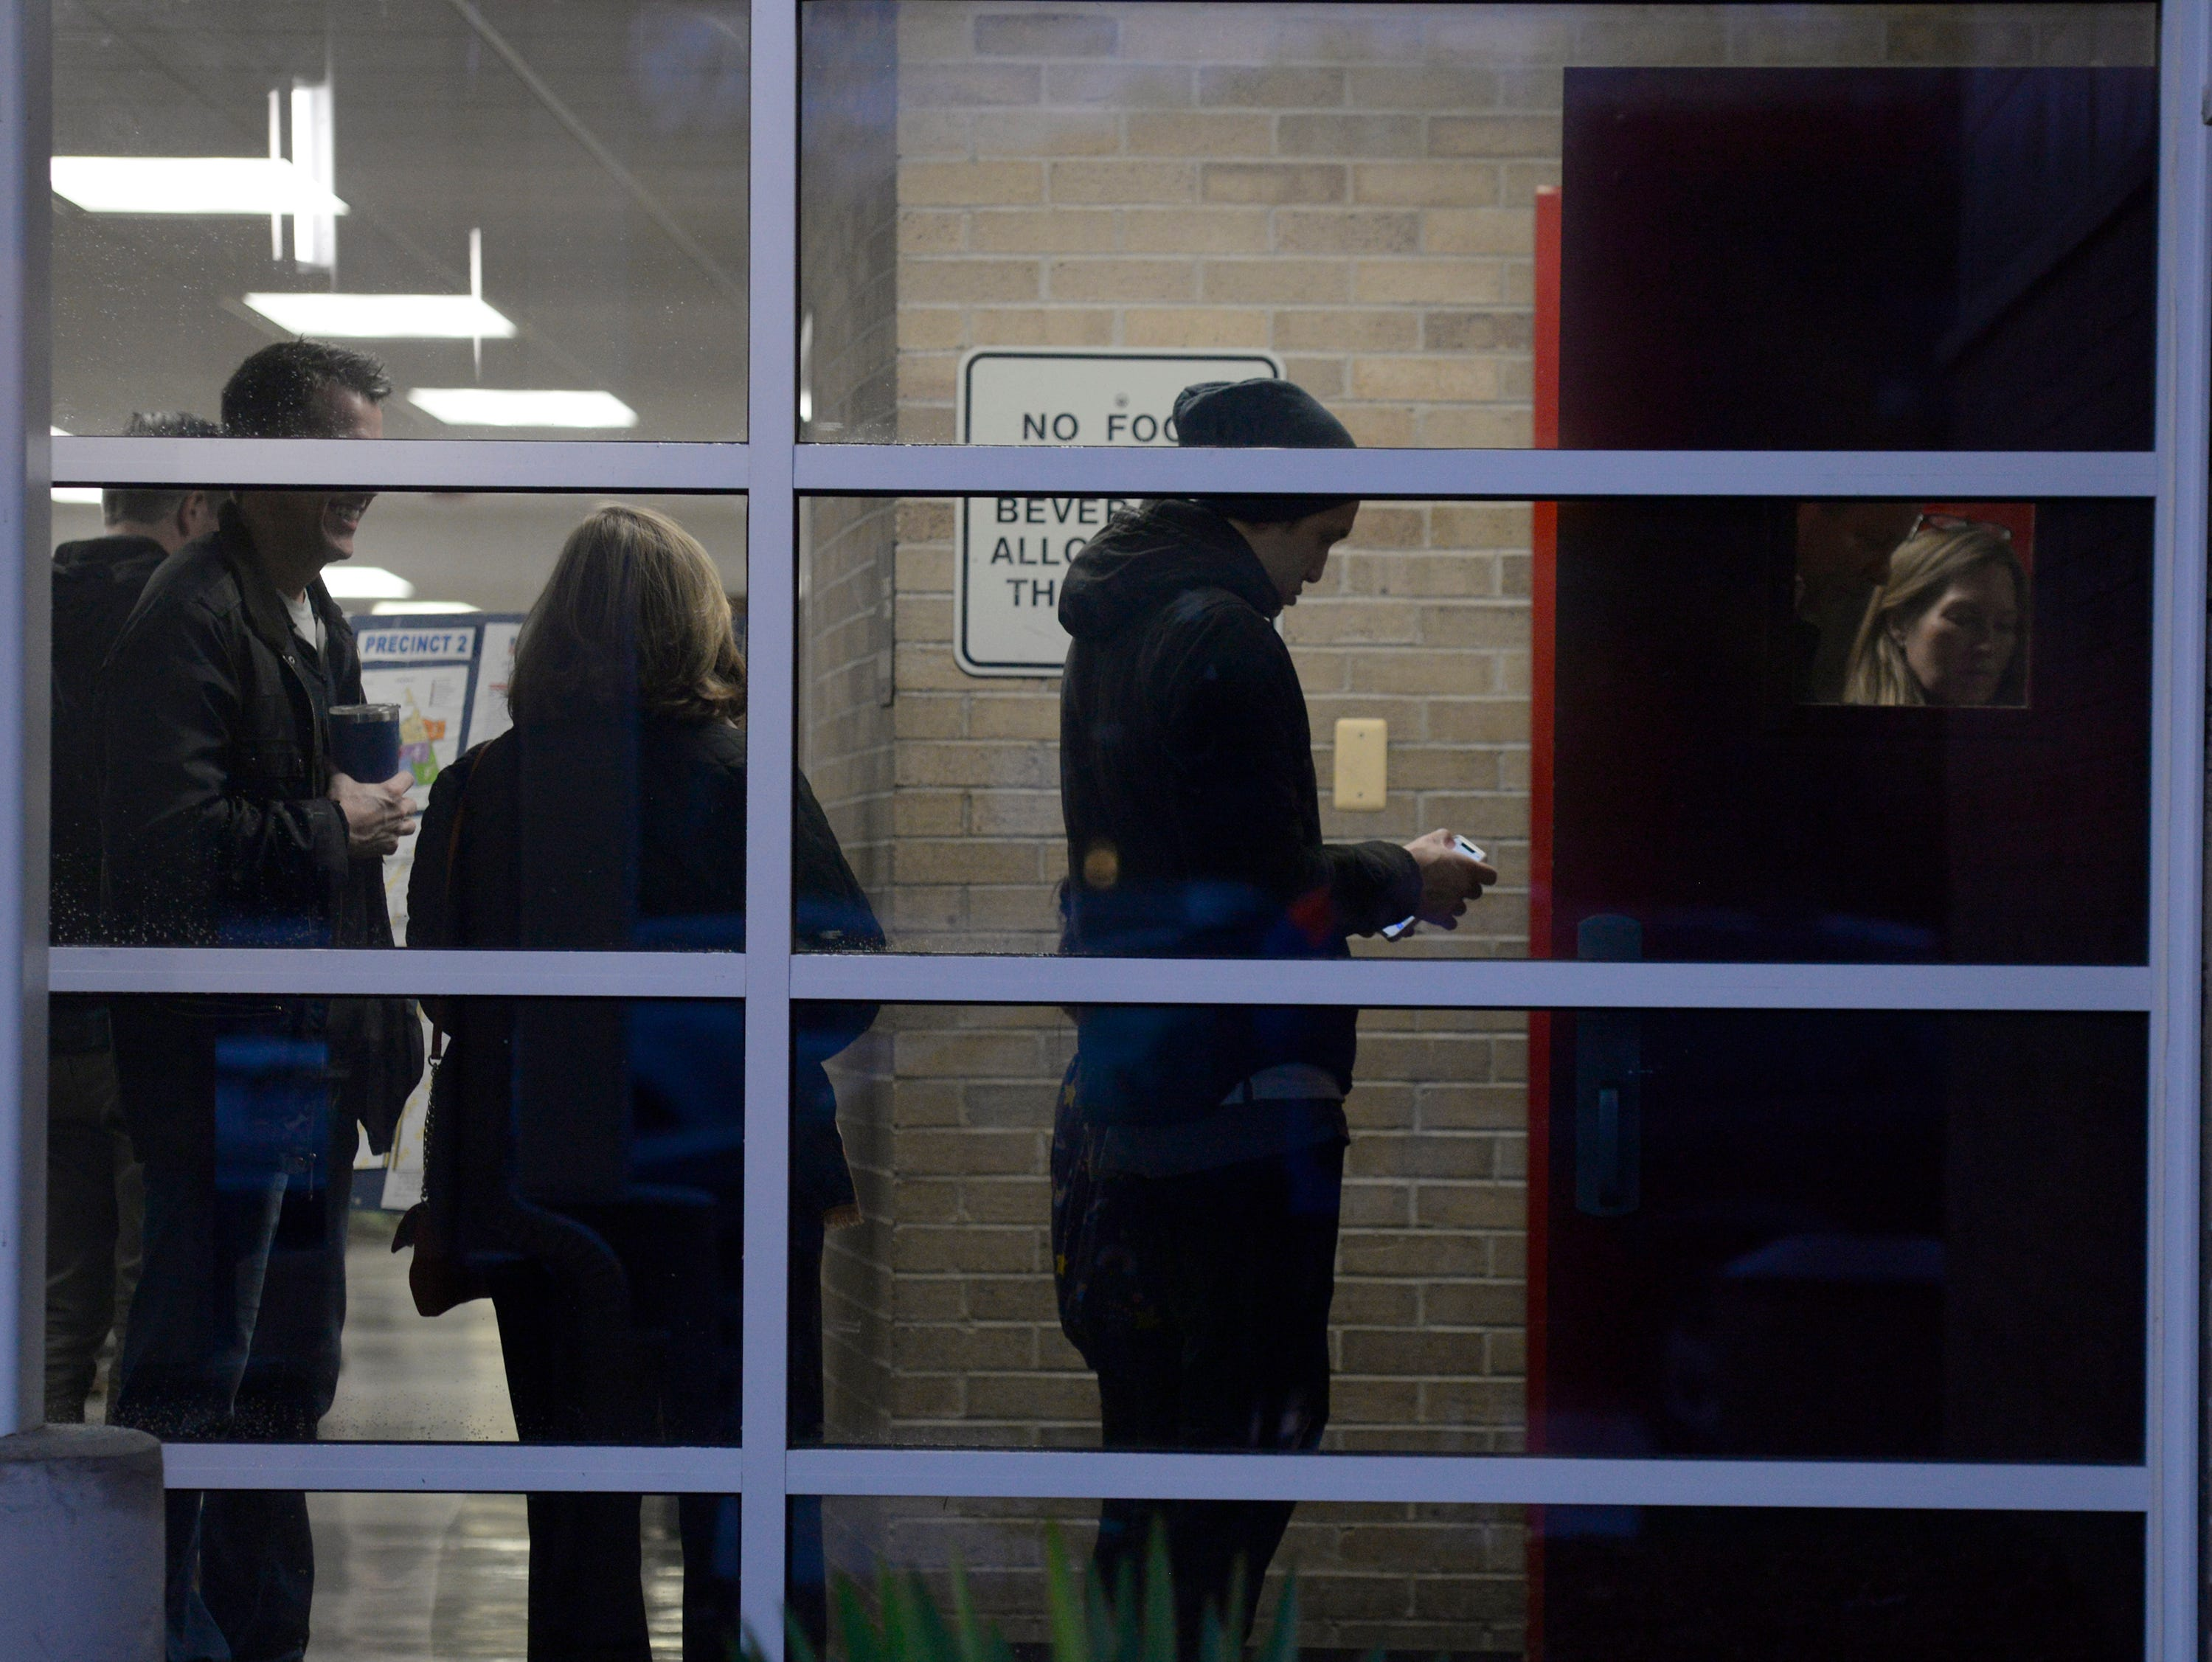 Voters wait in line at Derby Middle School in Birmingham early on election day Nov. 6, 2018.